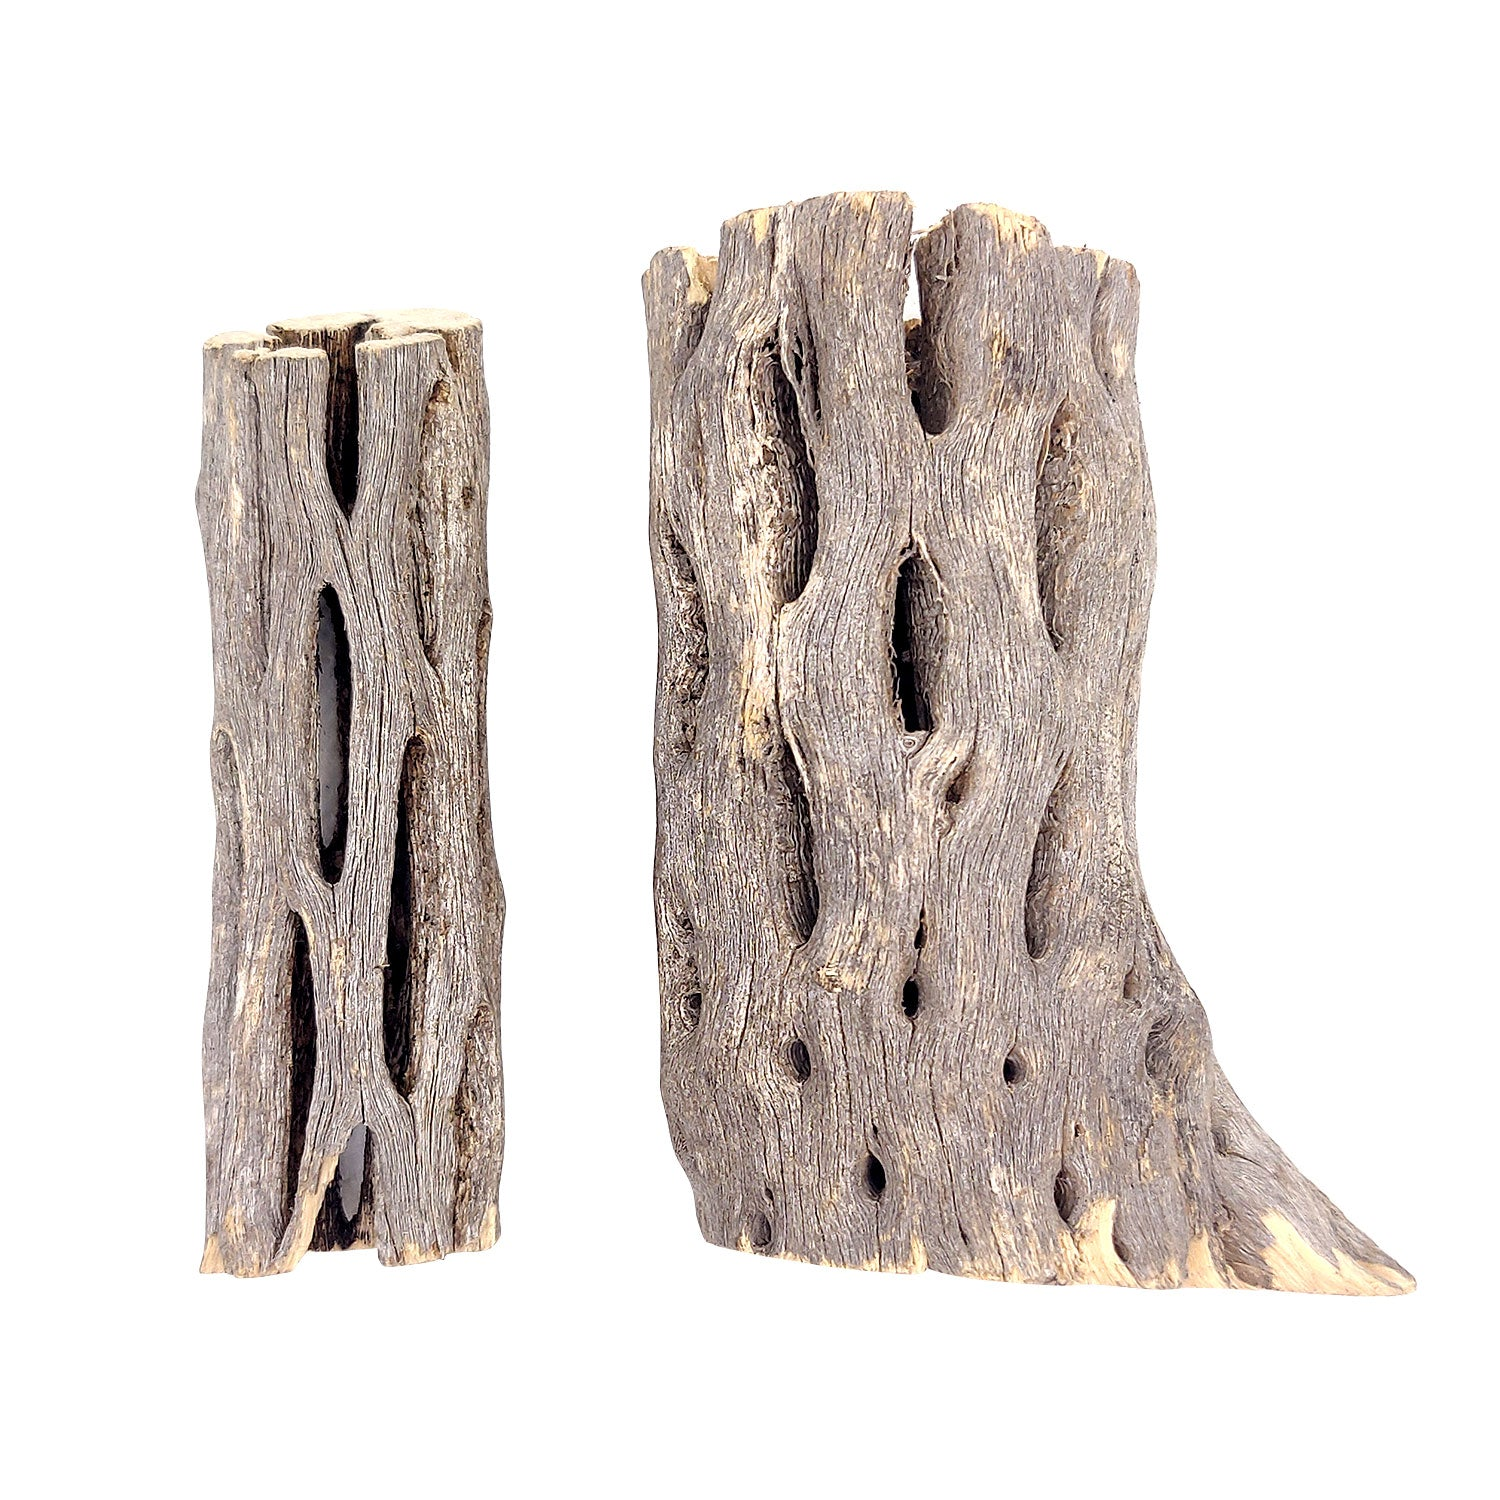 3 inch Staghorn Cholla Wood Pot for sale, Teddy Bear Cholla for Aquariums, Crafting, Air Plants, Natural cactus cholla wood, Home decor ideas, Air plant display, Air plant accessory for sale